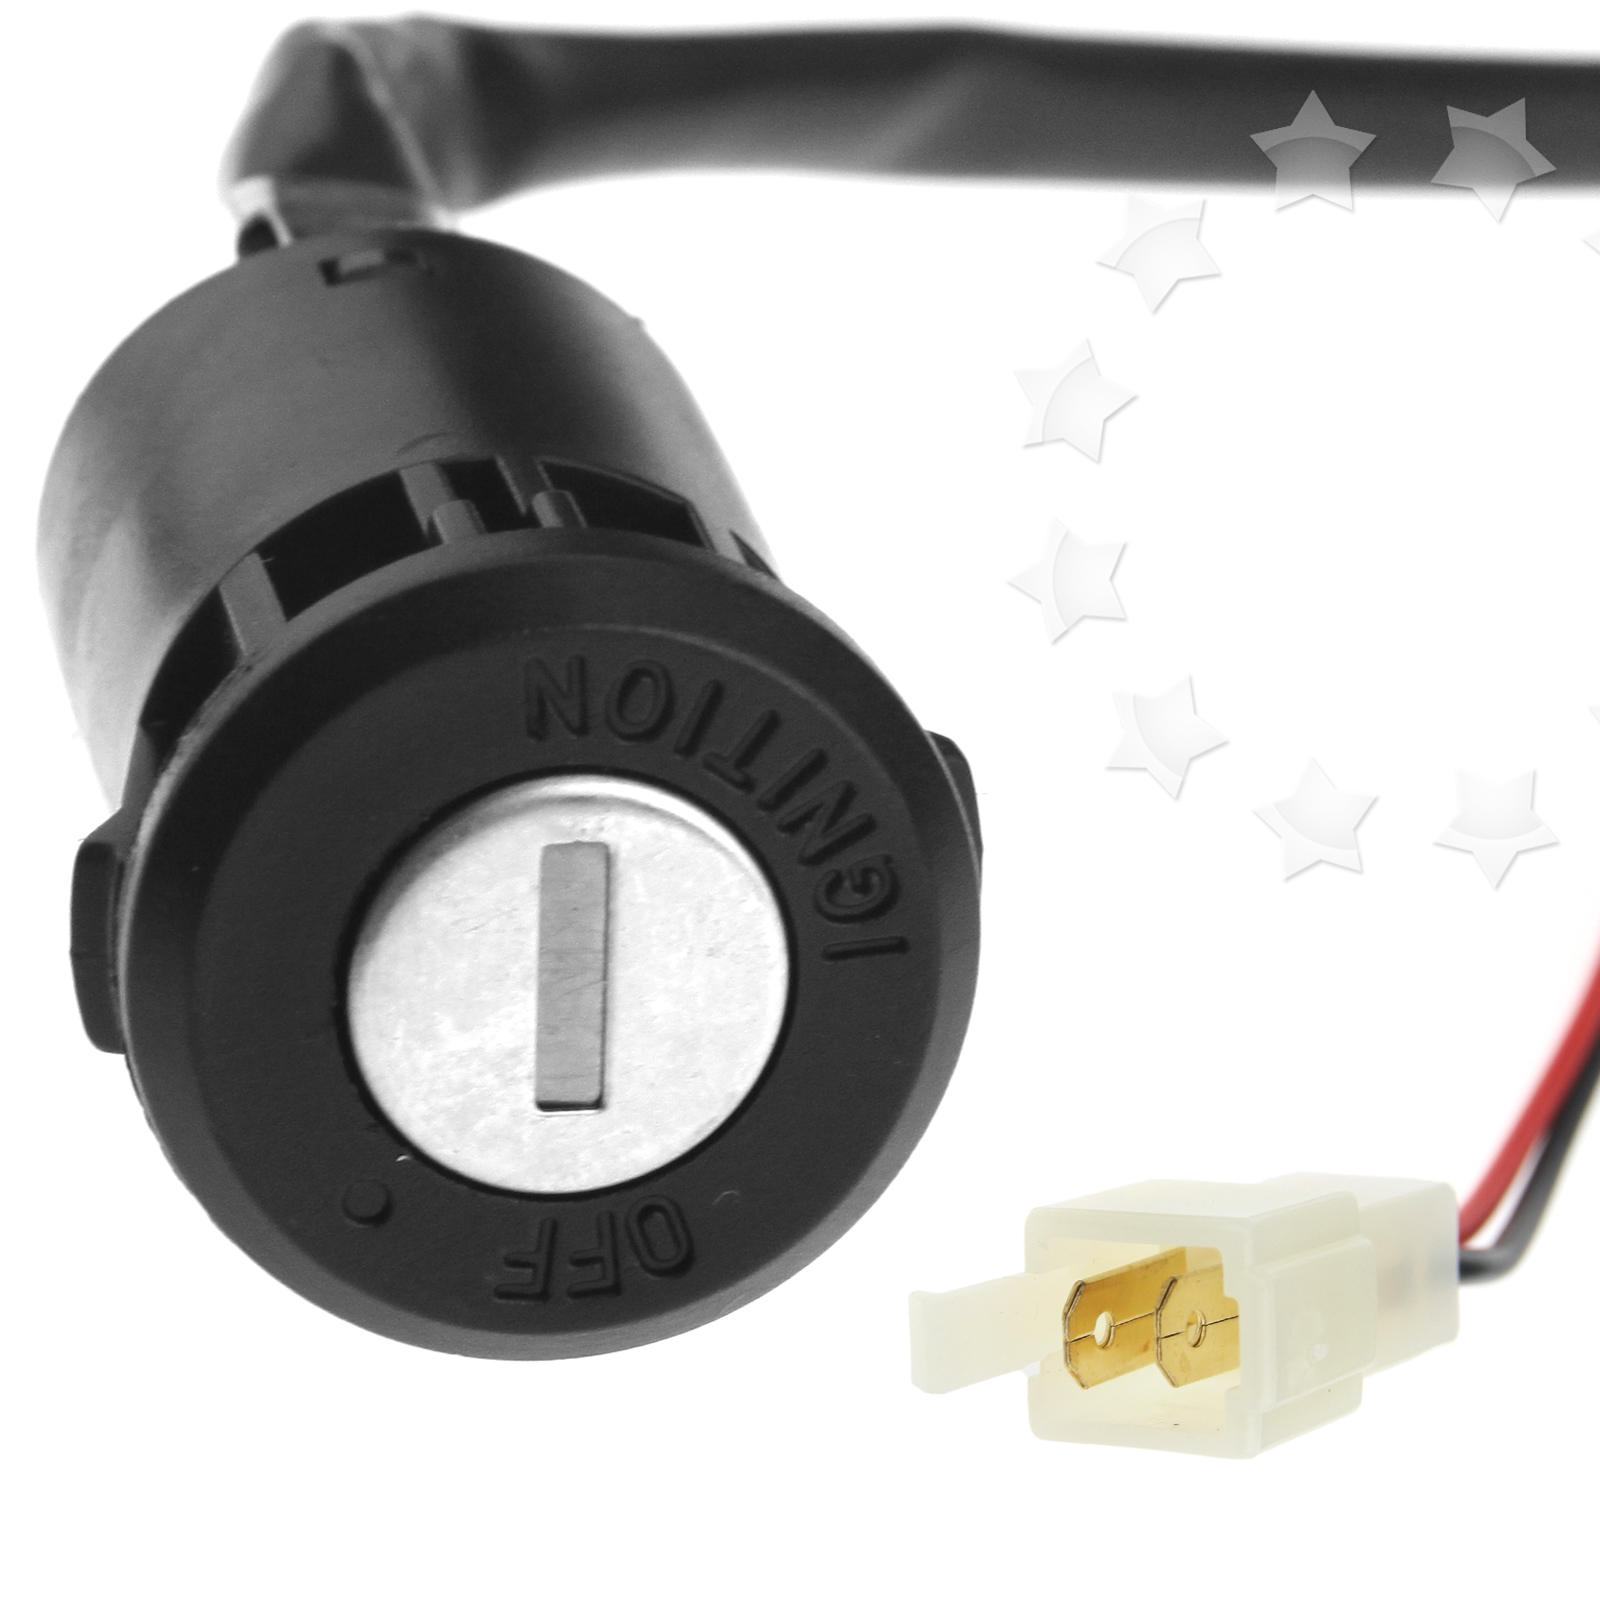 Motorcycle Ignition Barrel Key Switch 2 wire Universal On / Off ...